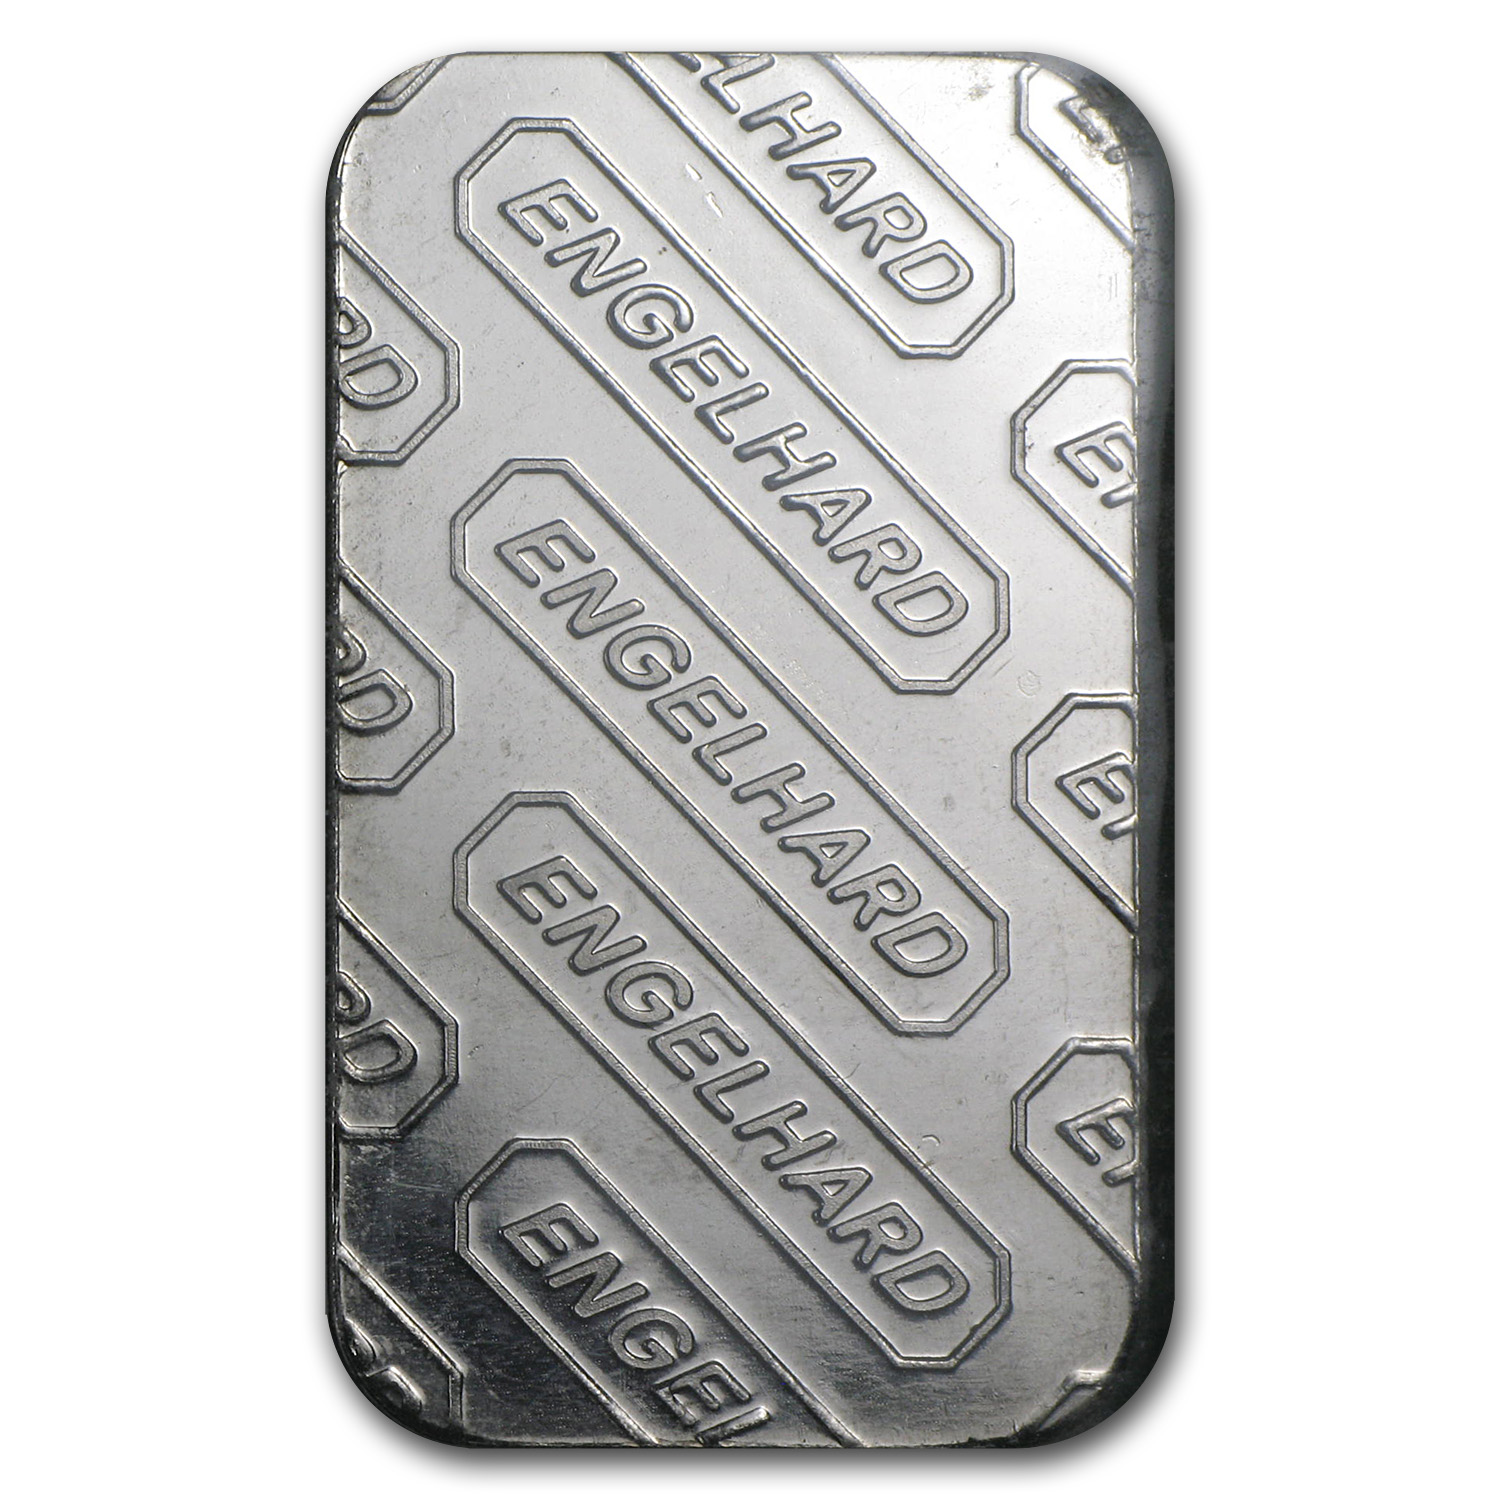 1 oz Palladium Bar - Engelhard (In Assay)